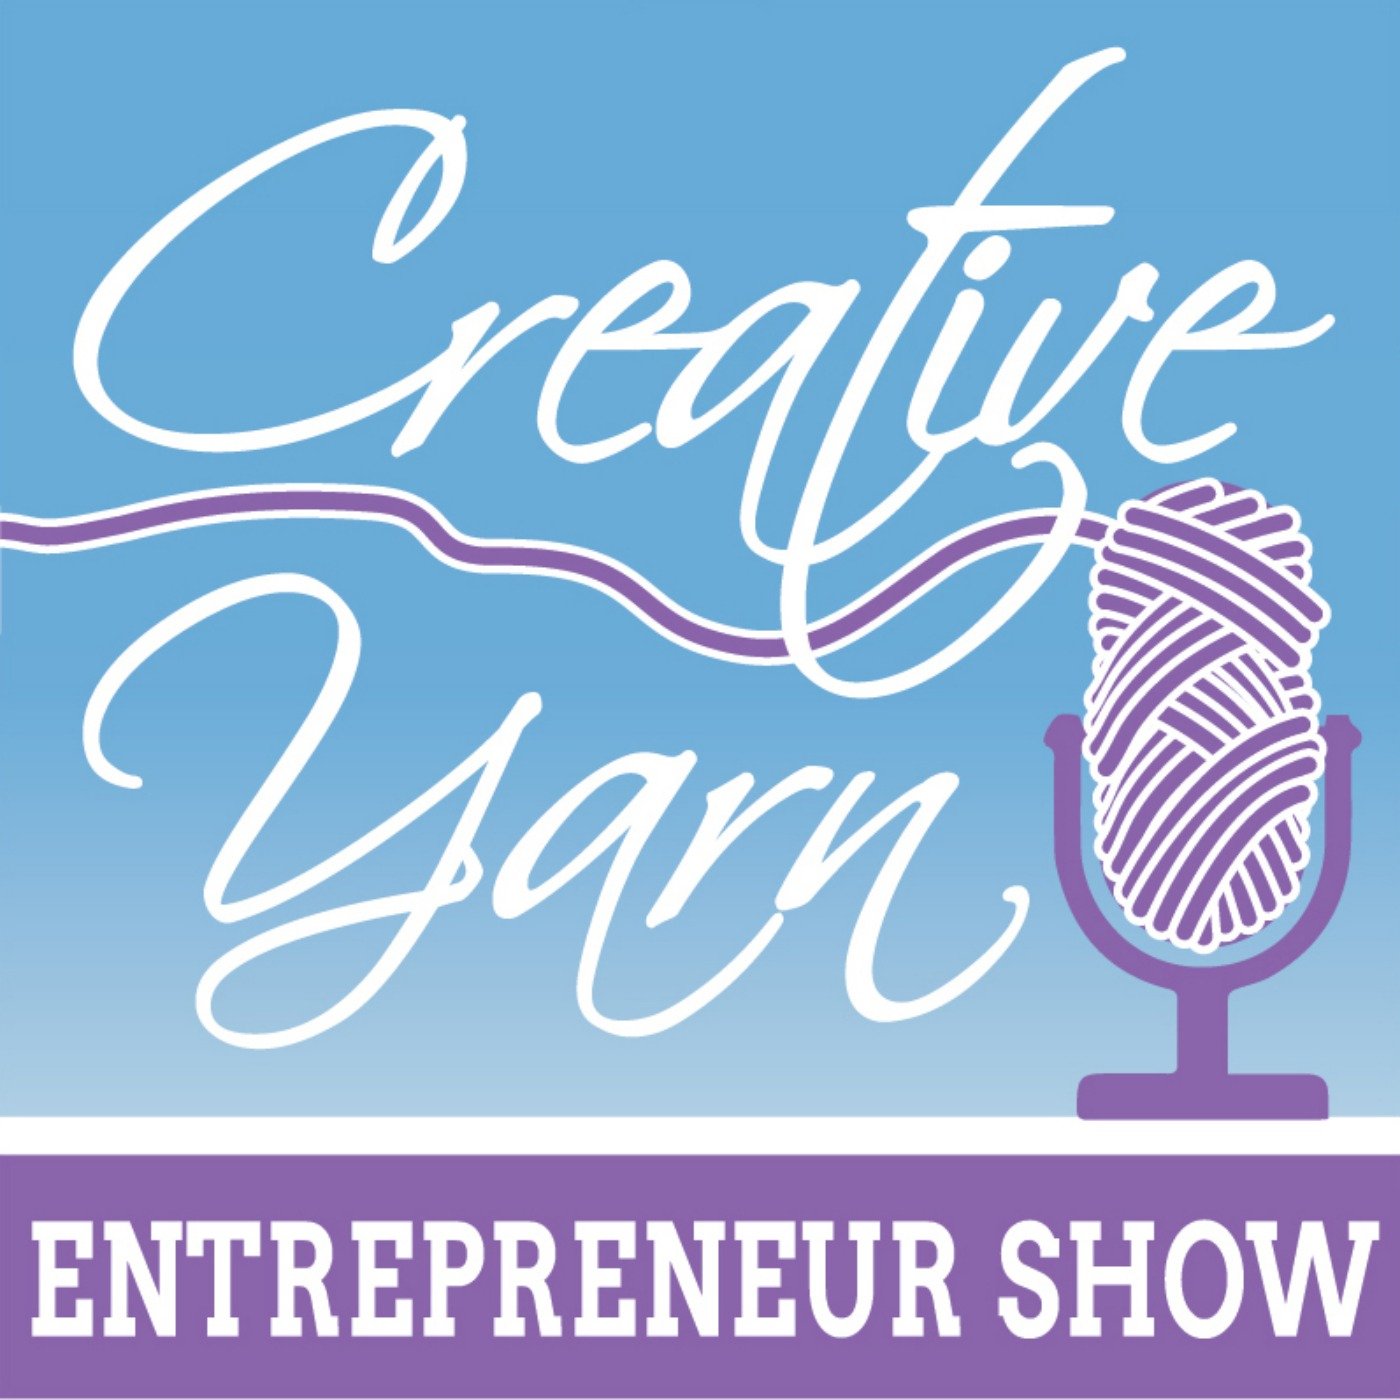 Episode 23: Diversifying Your Income and Boosting Your Blogging with Tamara Kelly from Moogly - The Creative Yarn Entrepreneur Show